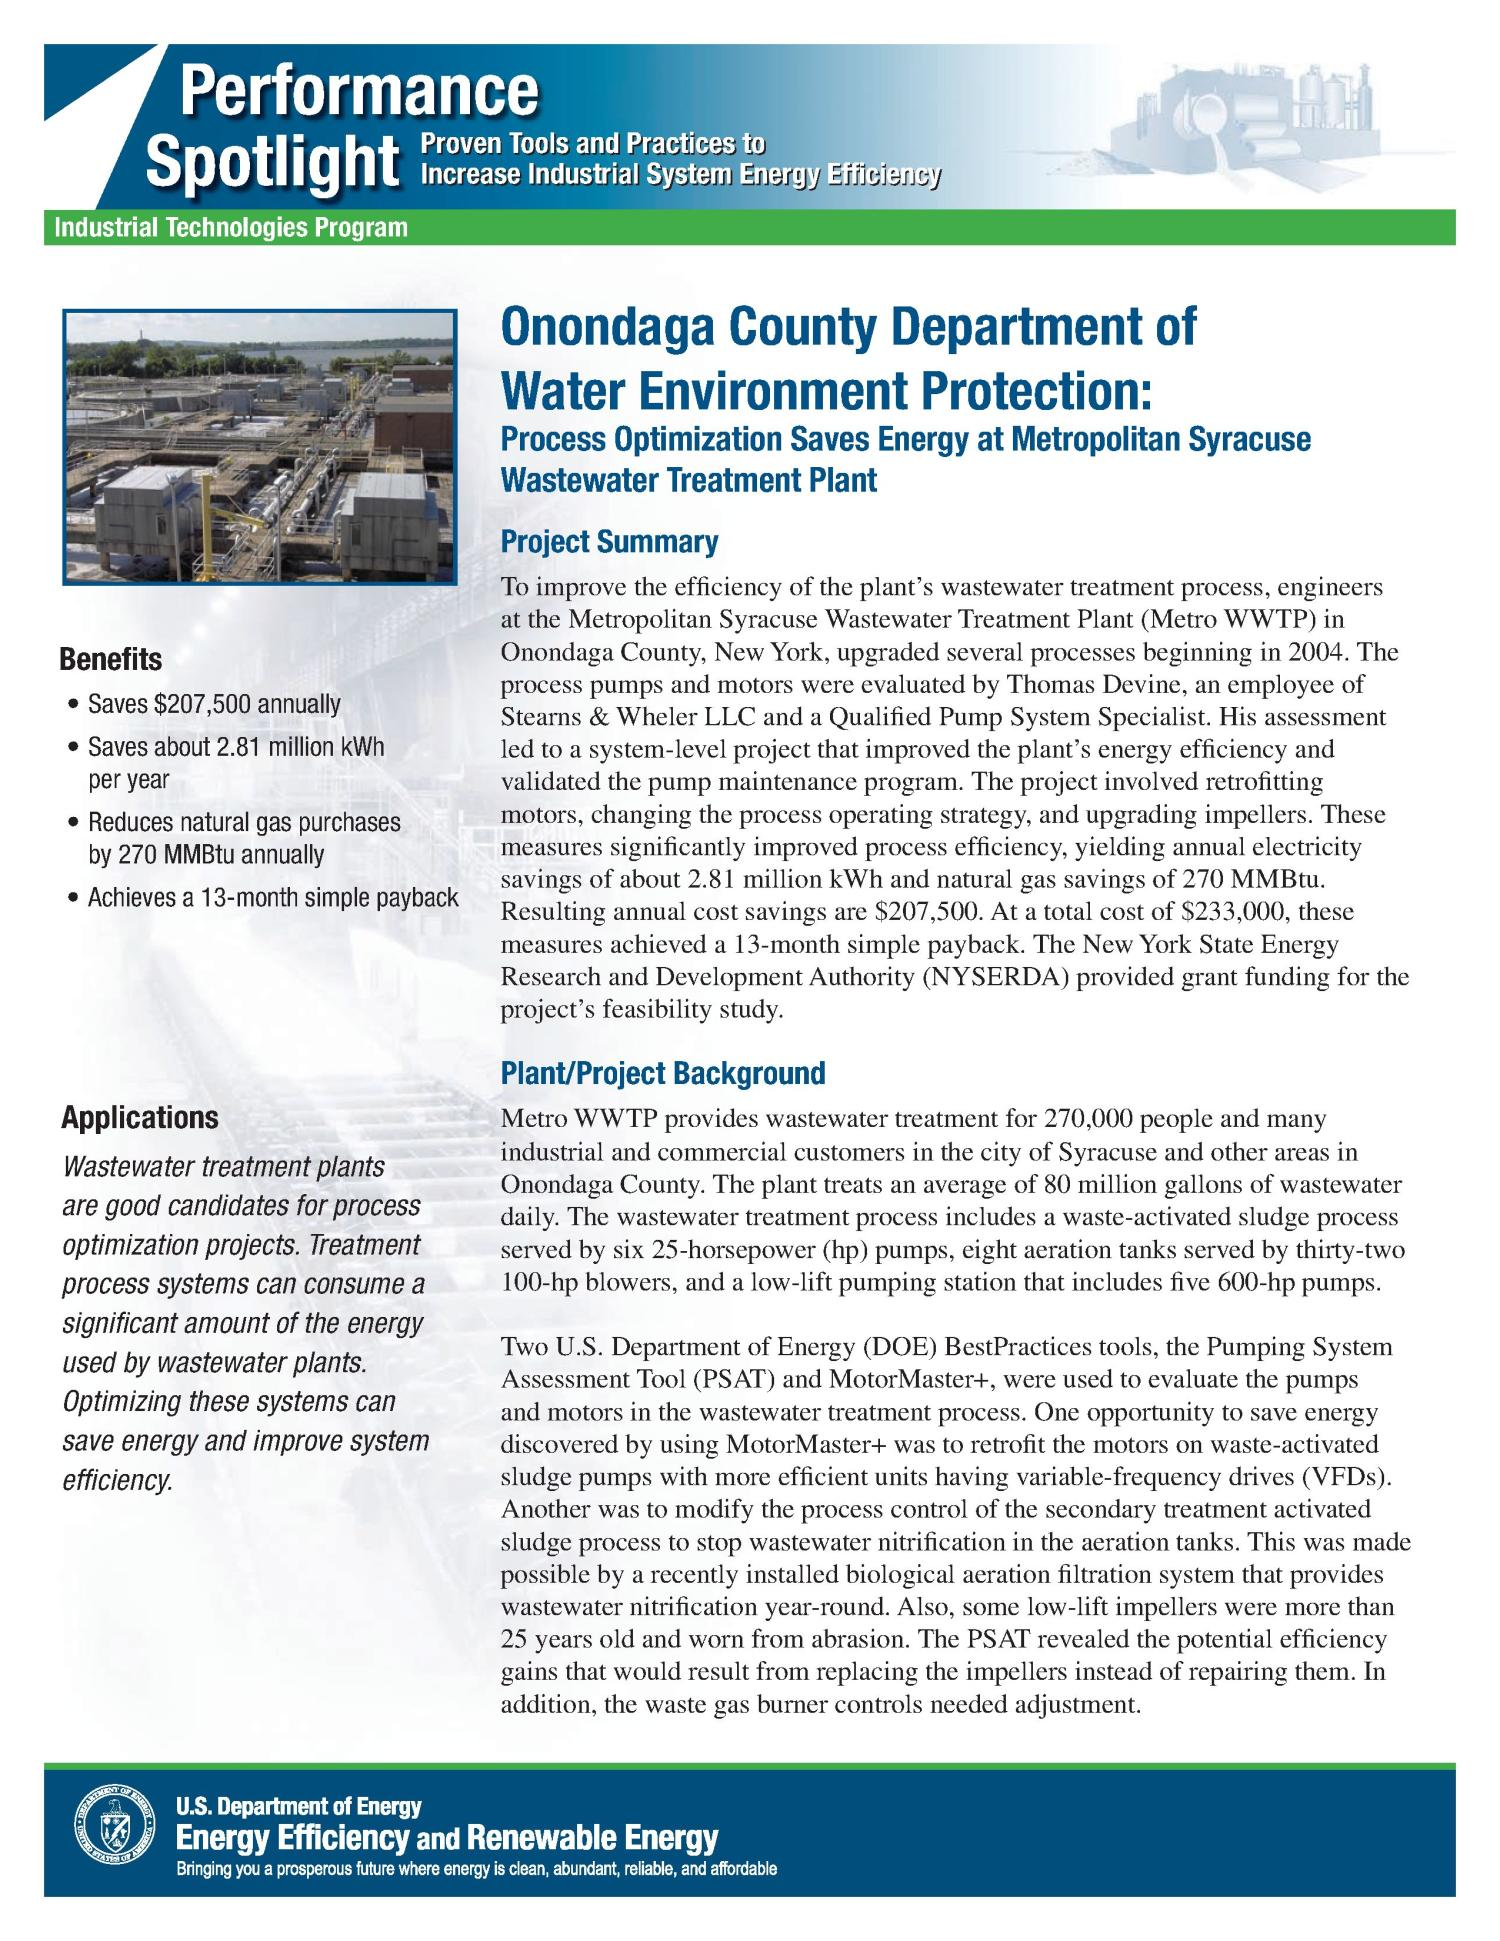 ondaga County Department of Water Environment Protection